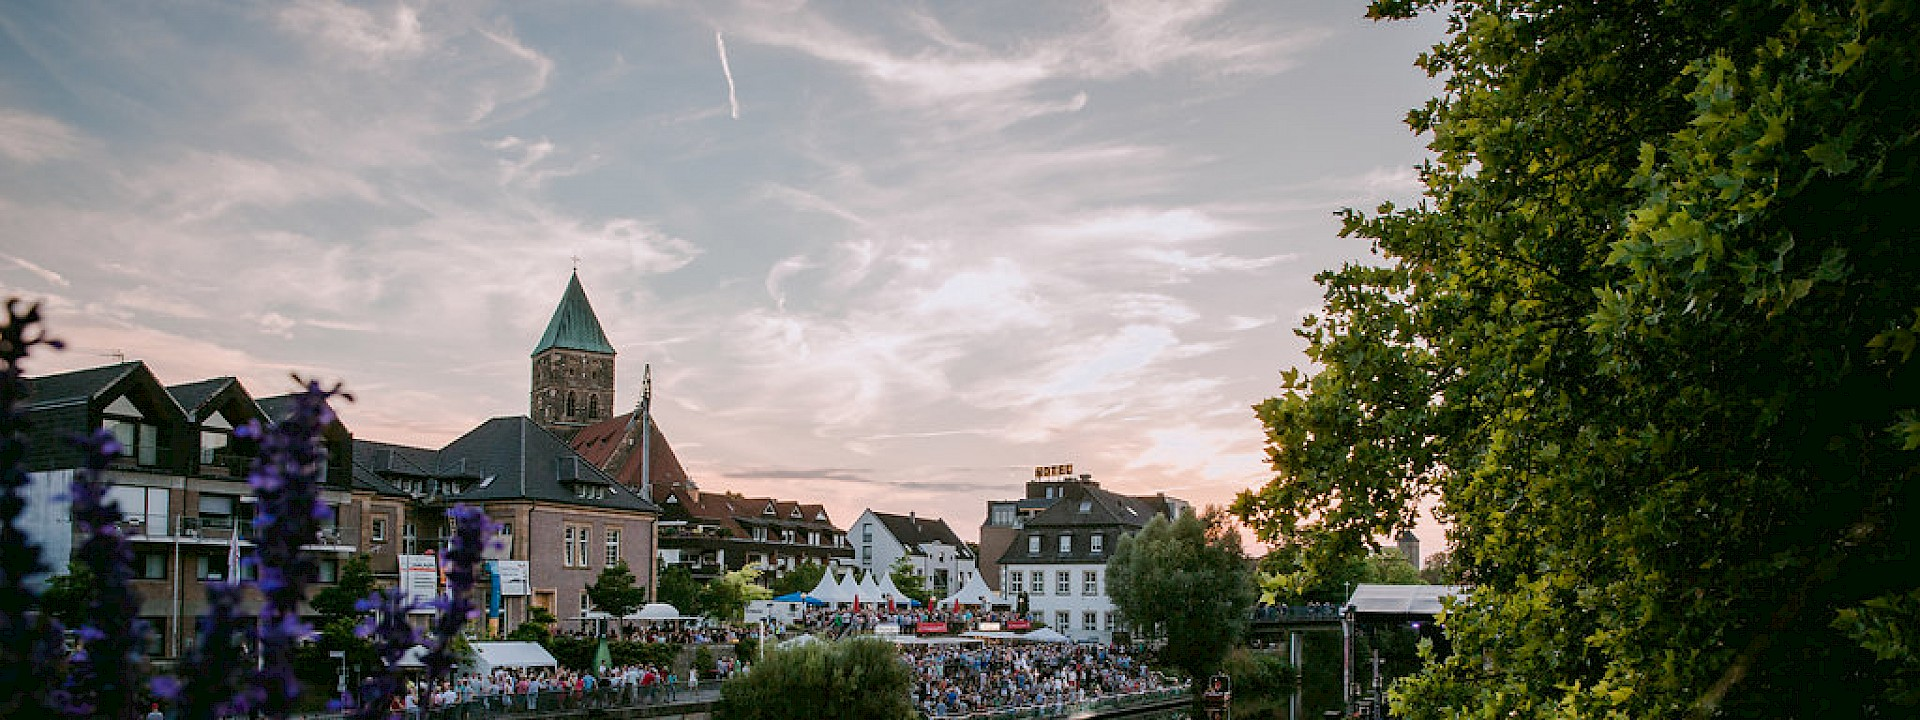 Vier Tage Livemusik, Theater & Show an der Ems EmsFestival